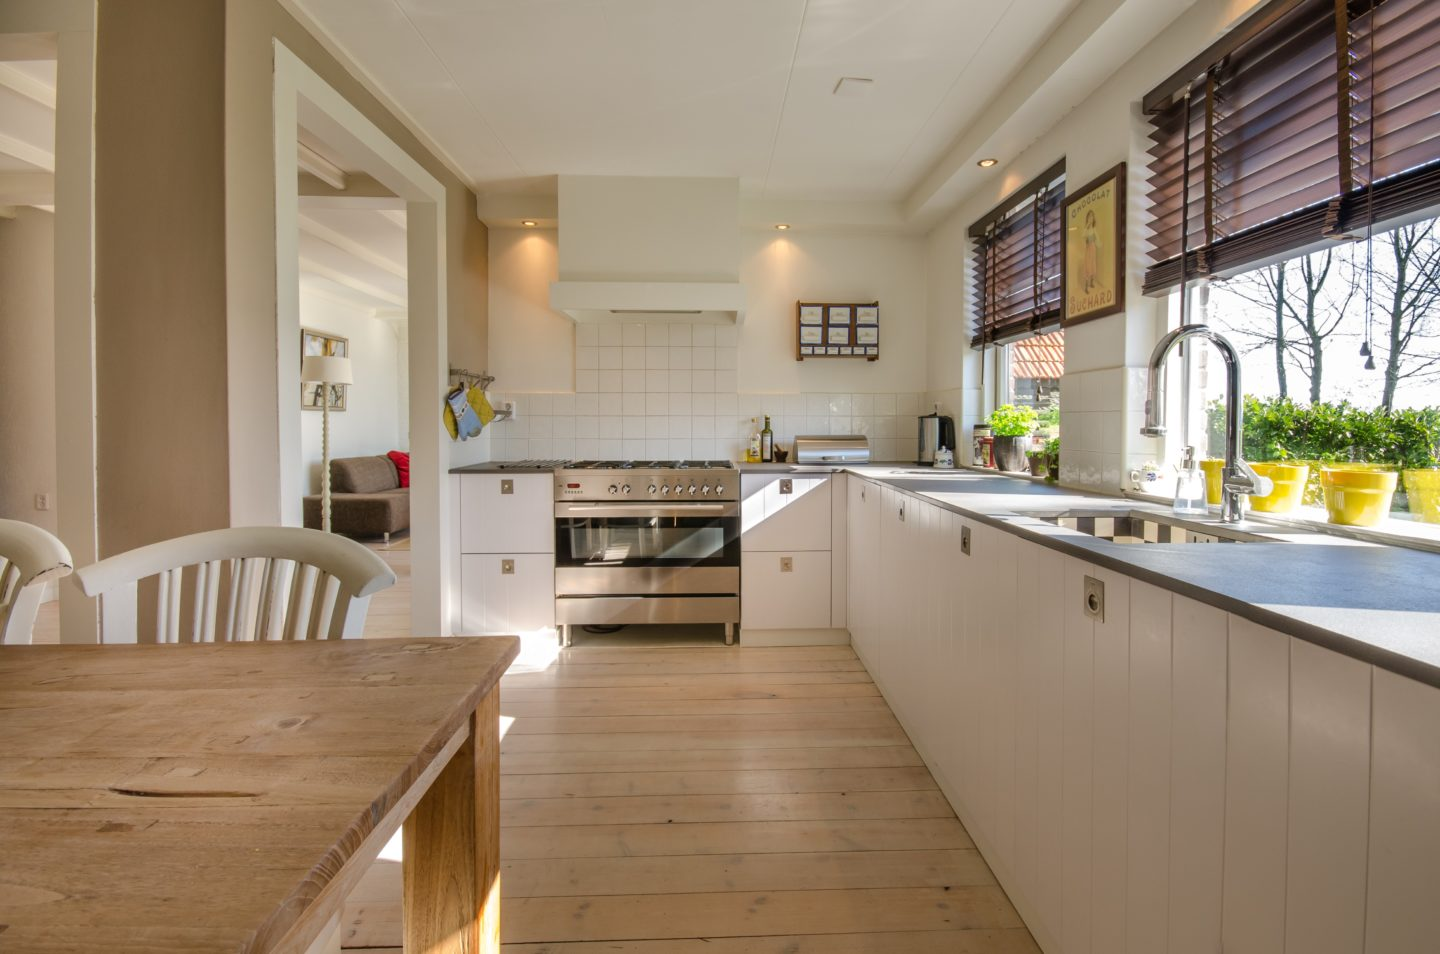 Easy Changes To Make To Your Kitchen Without The Need To Remodel